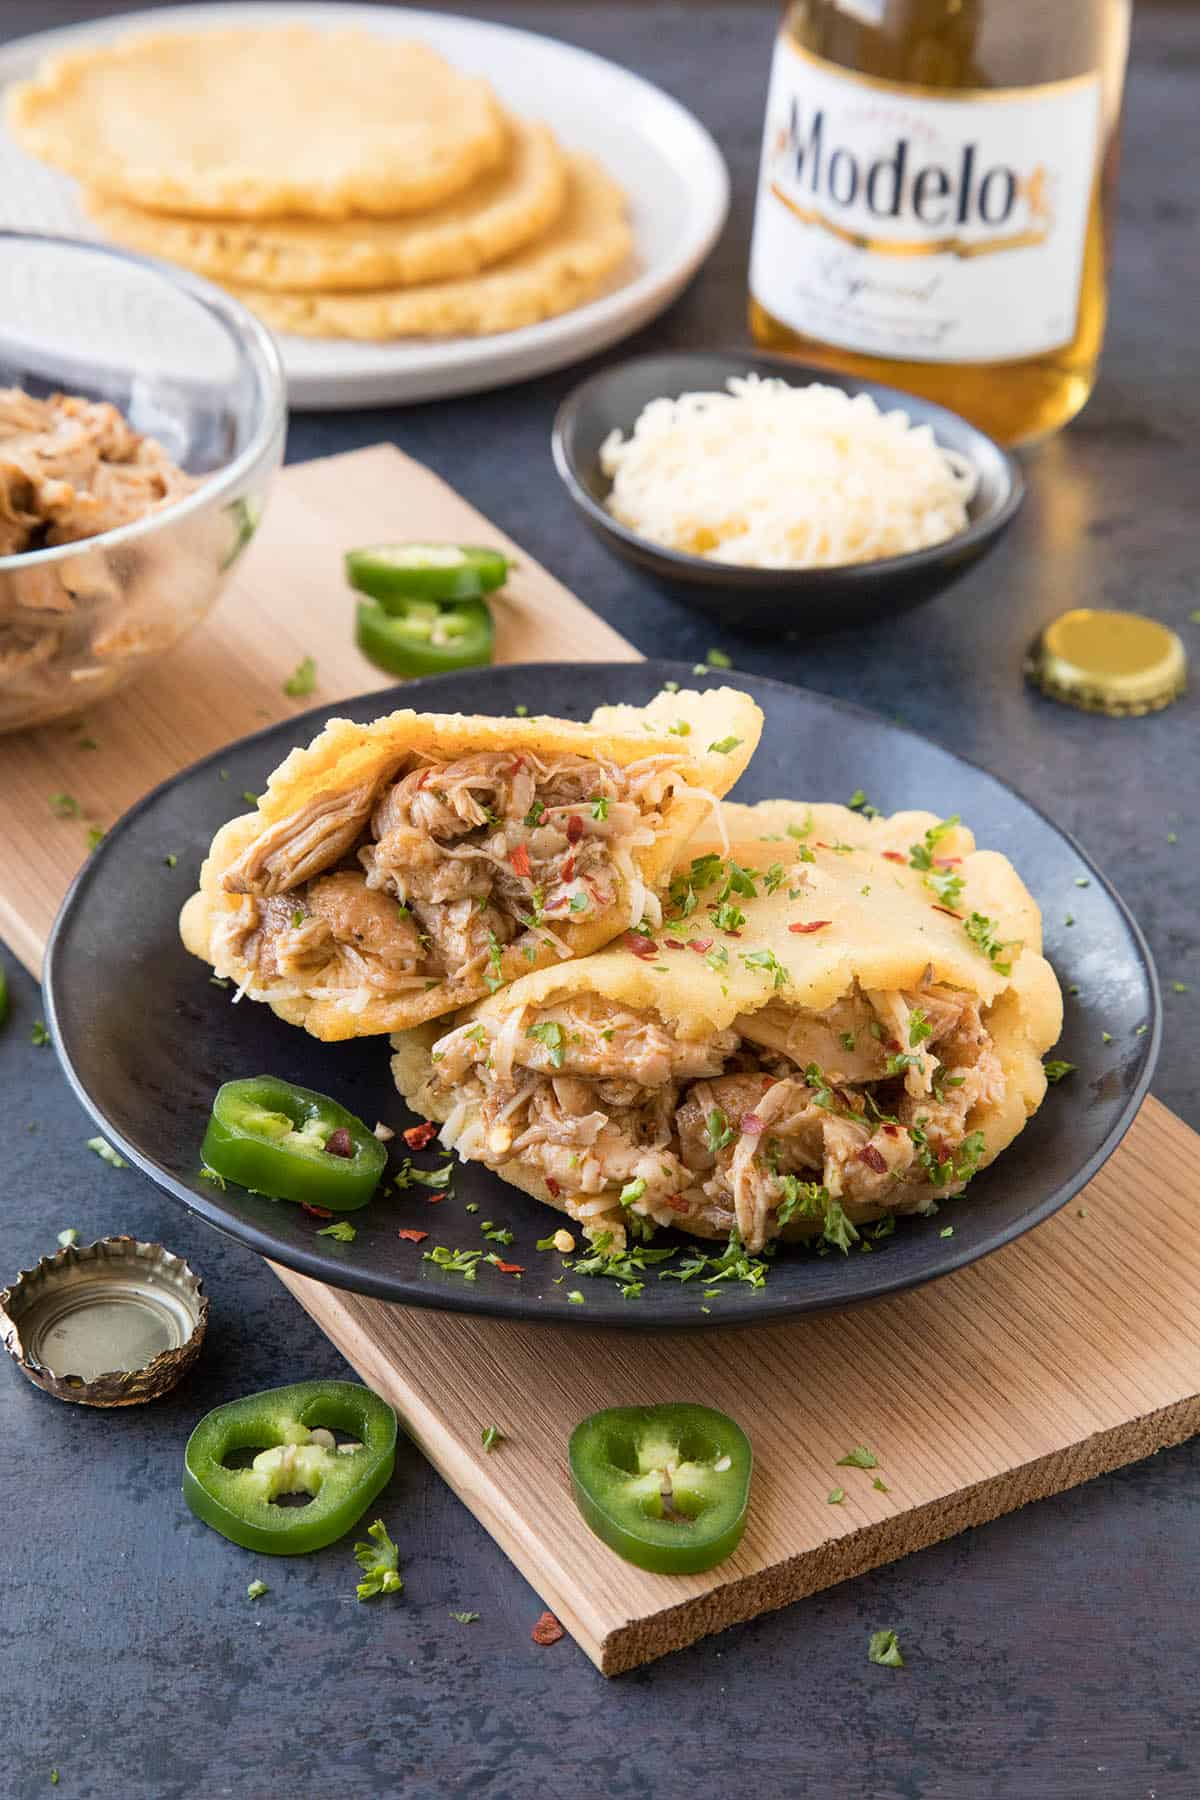 Pulled Chicken Gorditas Recipe - Stuffed with Delicious Pulled Chicken